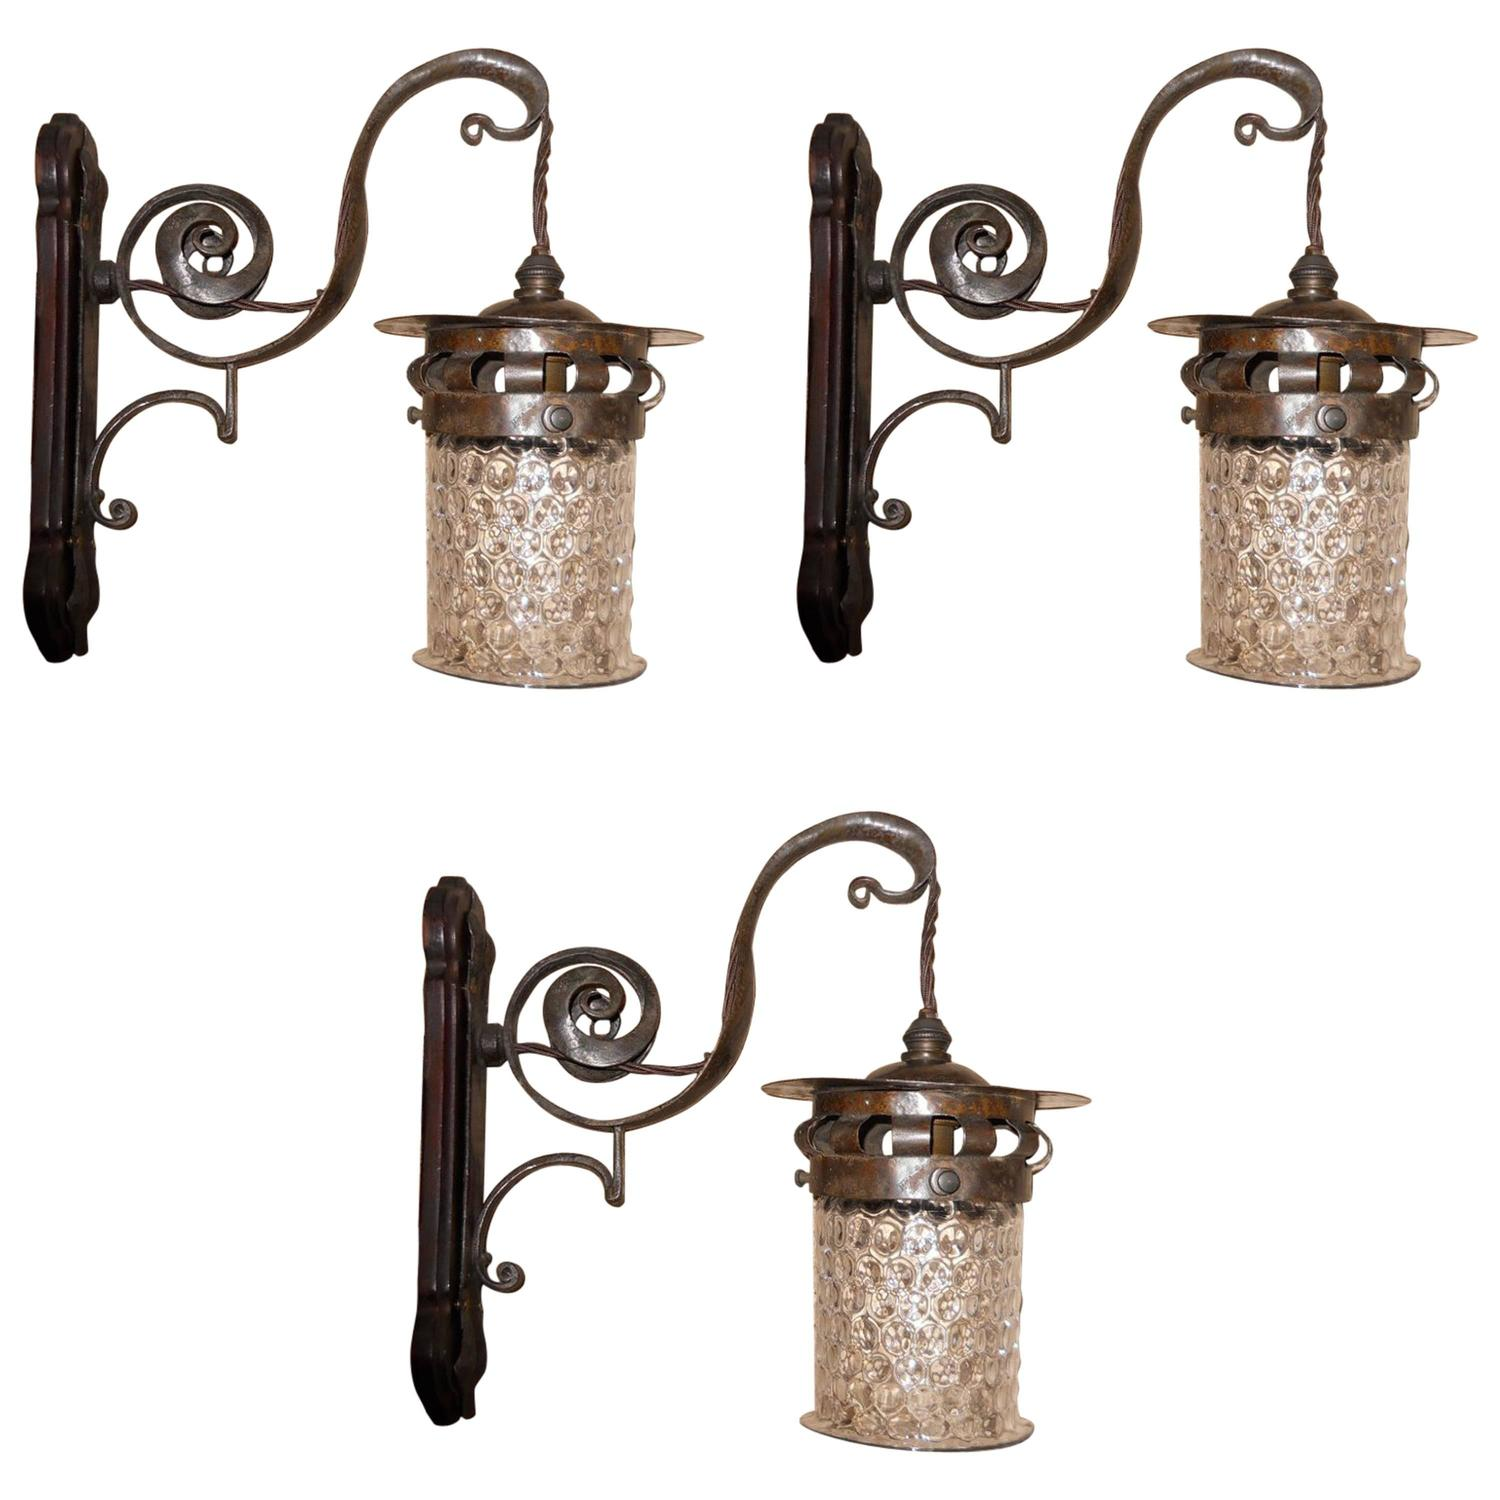 Three pairs of Arts and Crafts hand made iron wall lights with mottled shades For Sale at 1stdibs